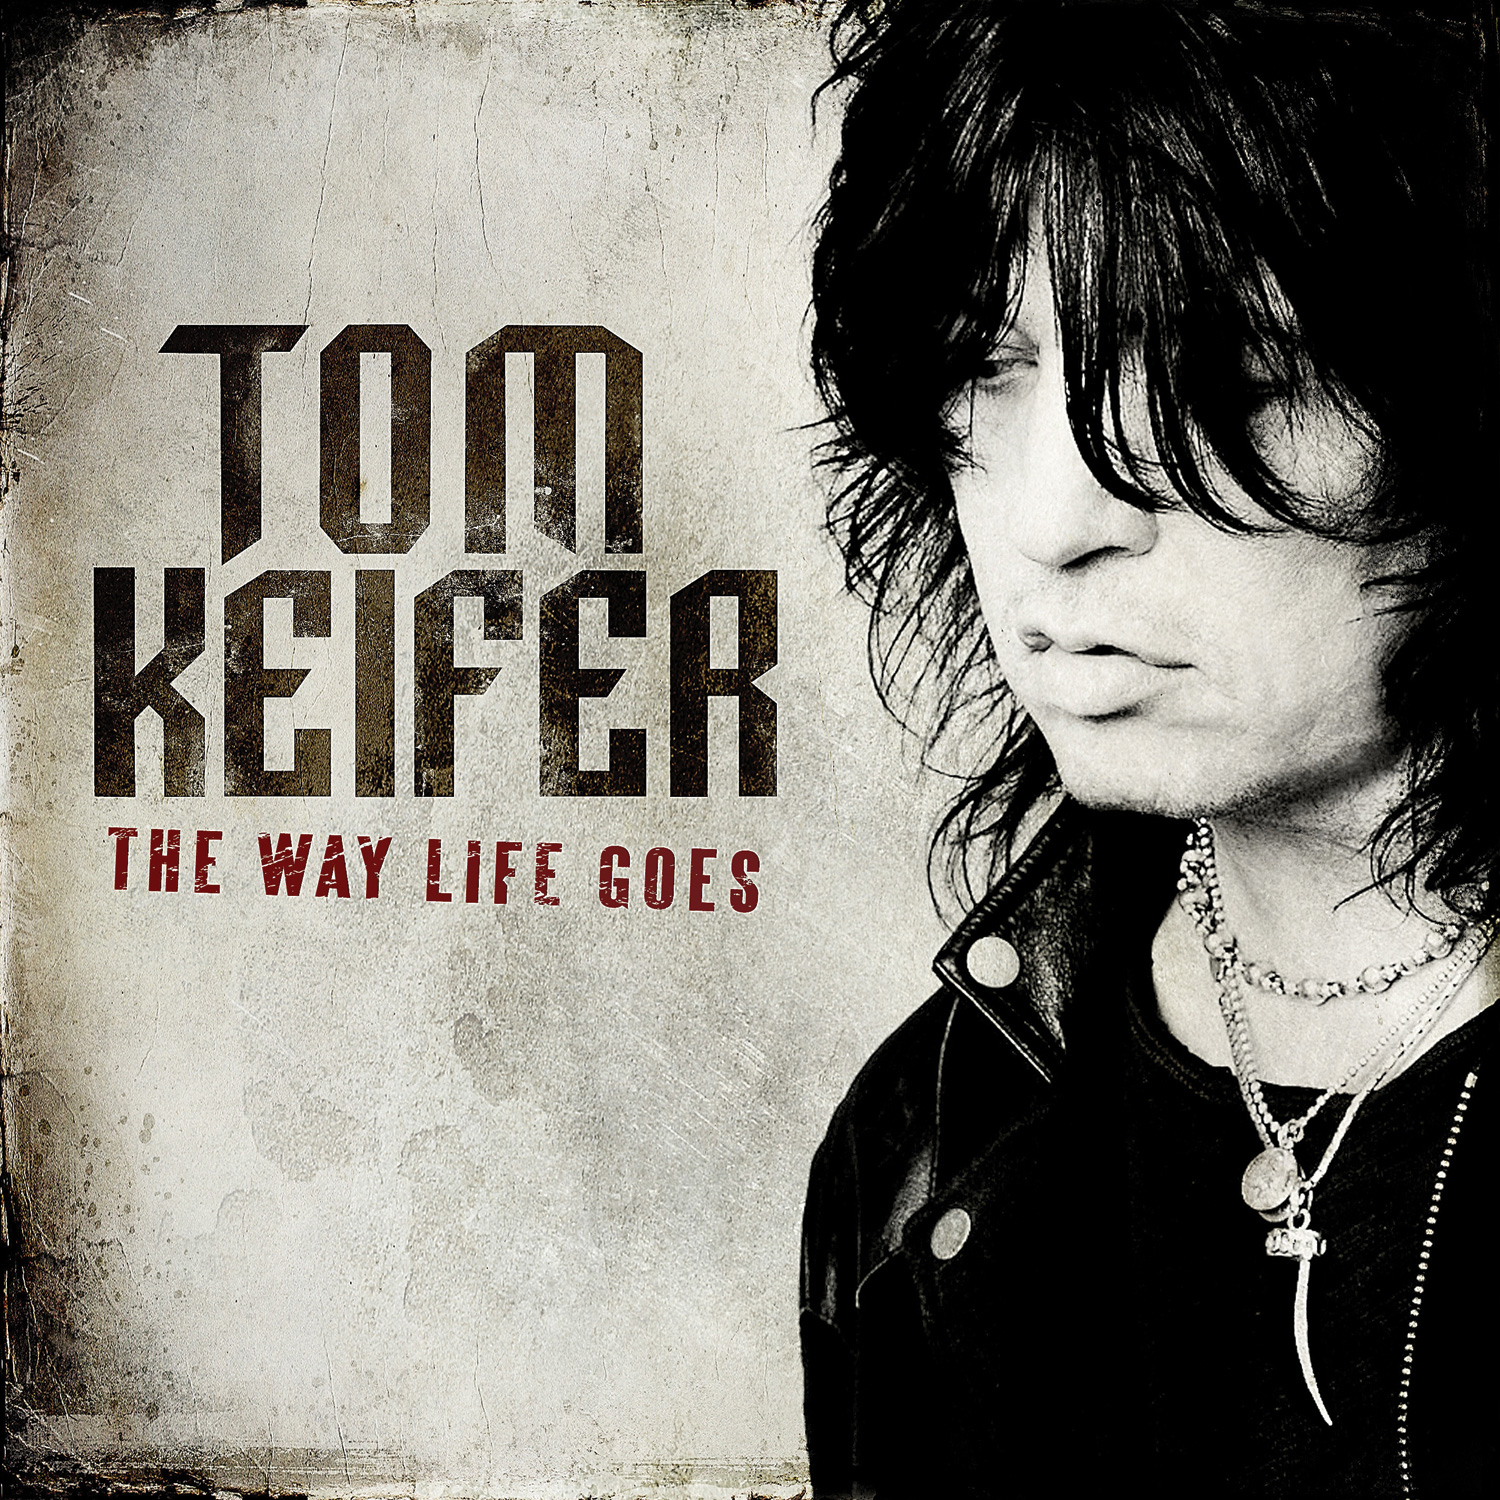 Tastes Like Rock - Tom Keifer - The Way Life Goes Review